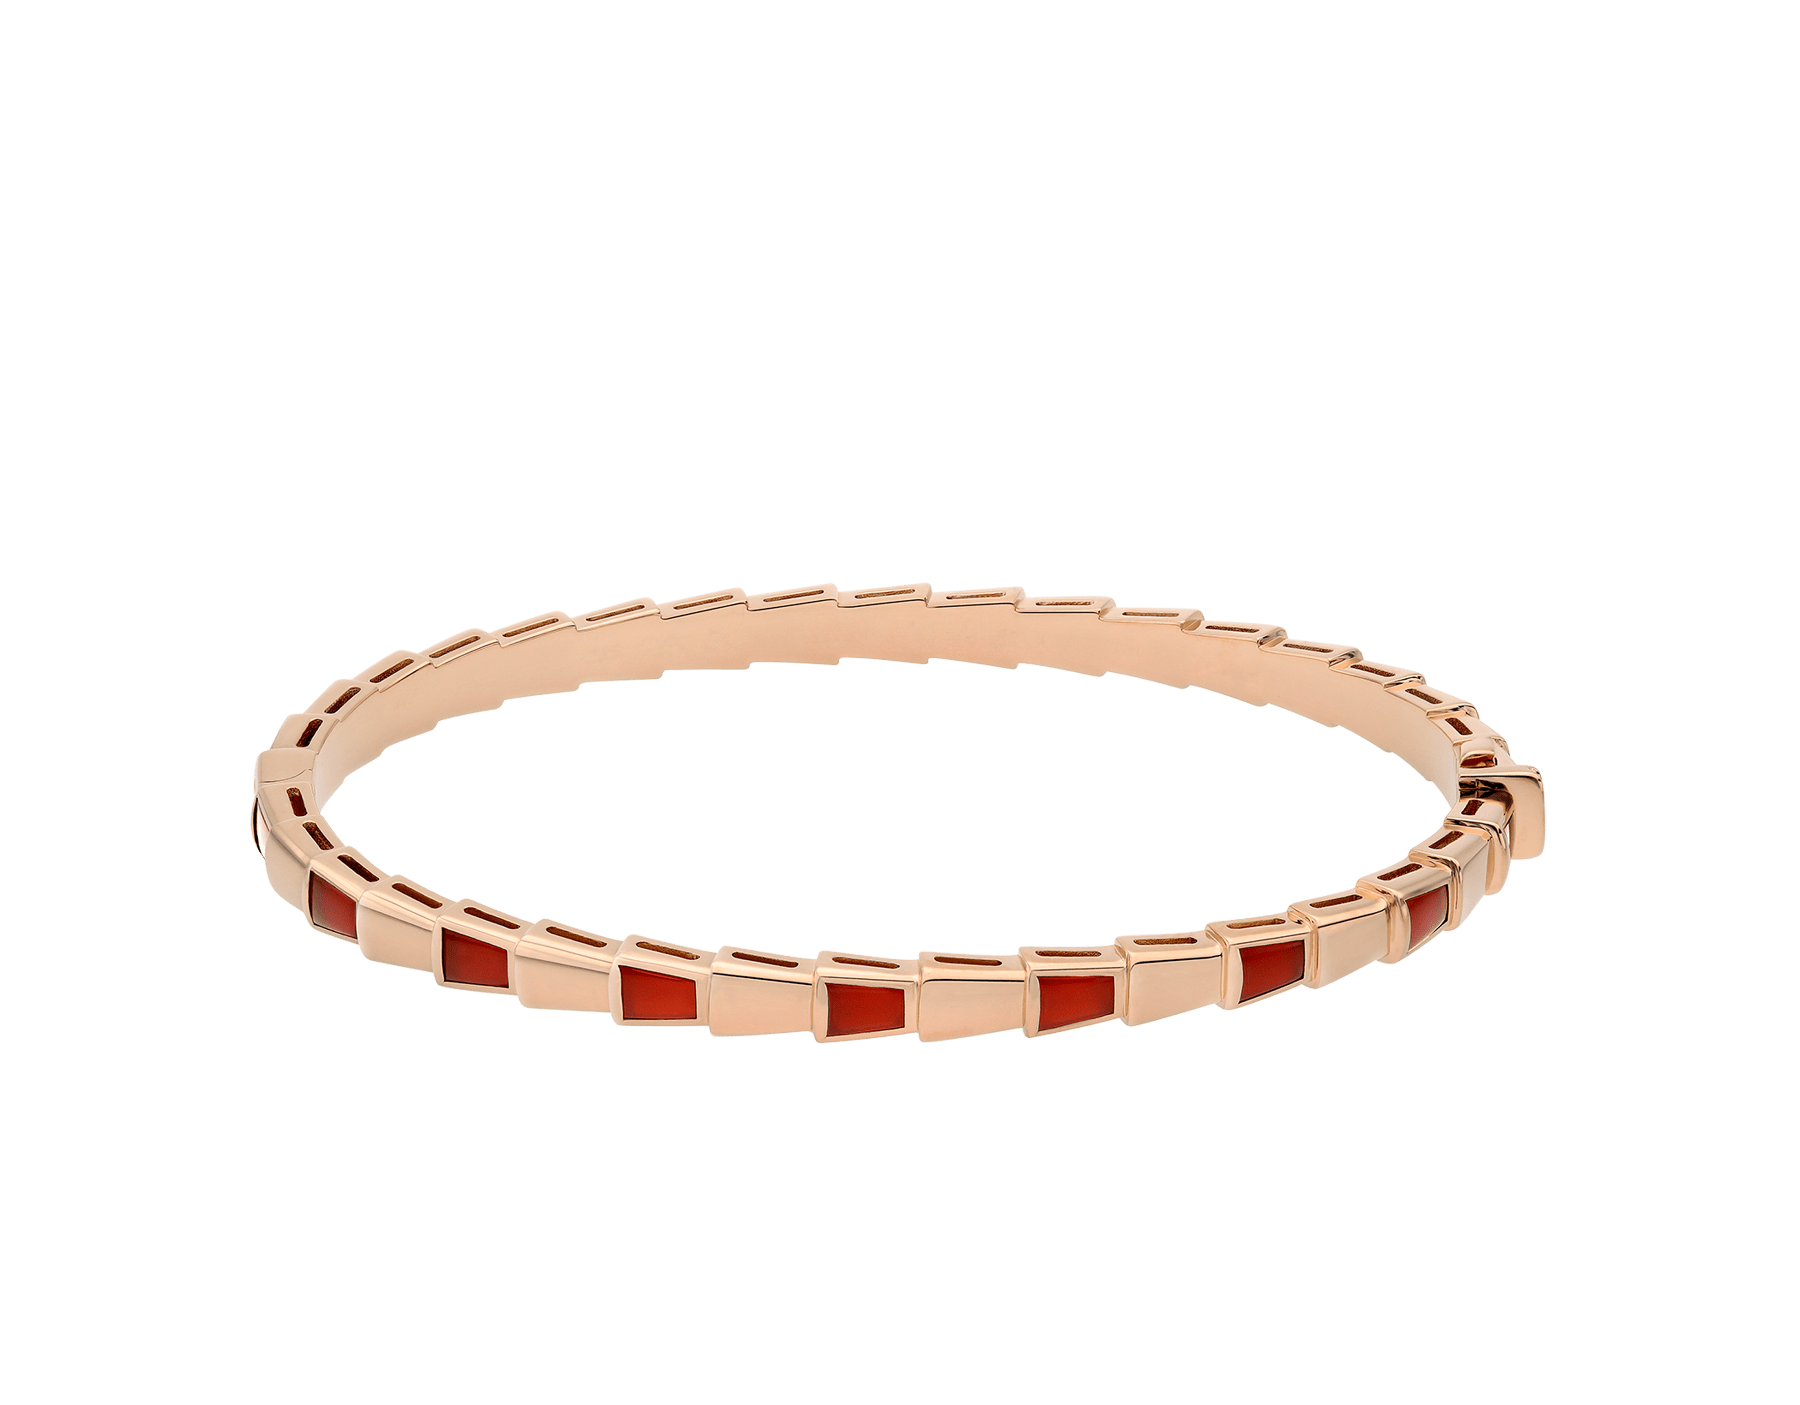 Serpenti Viper 18 kt rose gold thin bangle bracelet set with carnelian elements BR858637 image 2